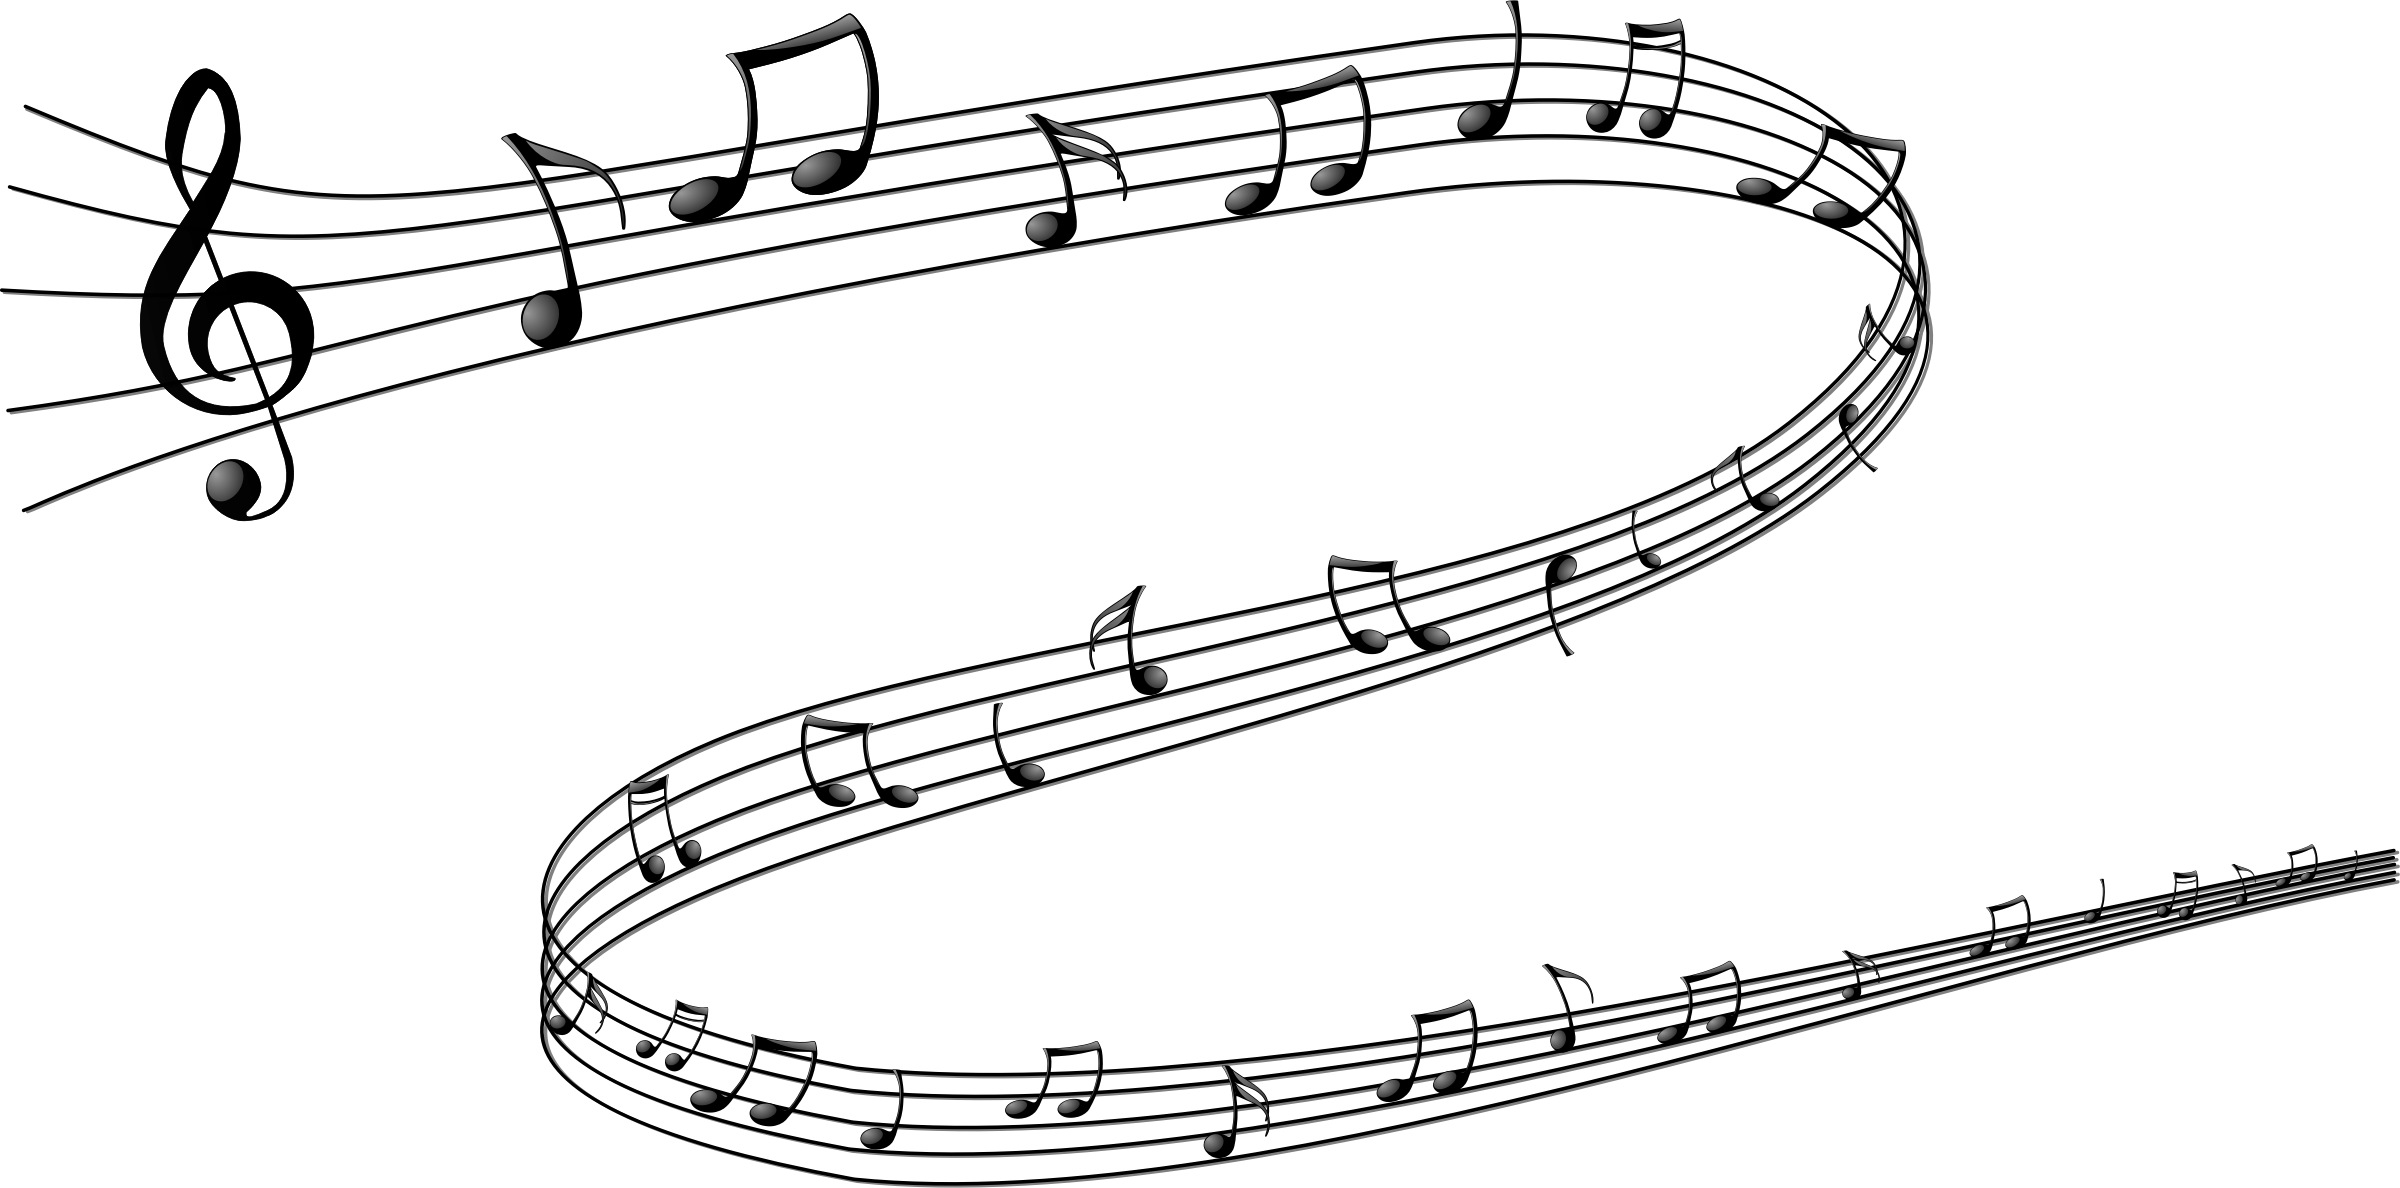 Musical transparent images pluspng. Staff music notes png svg download